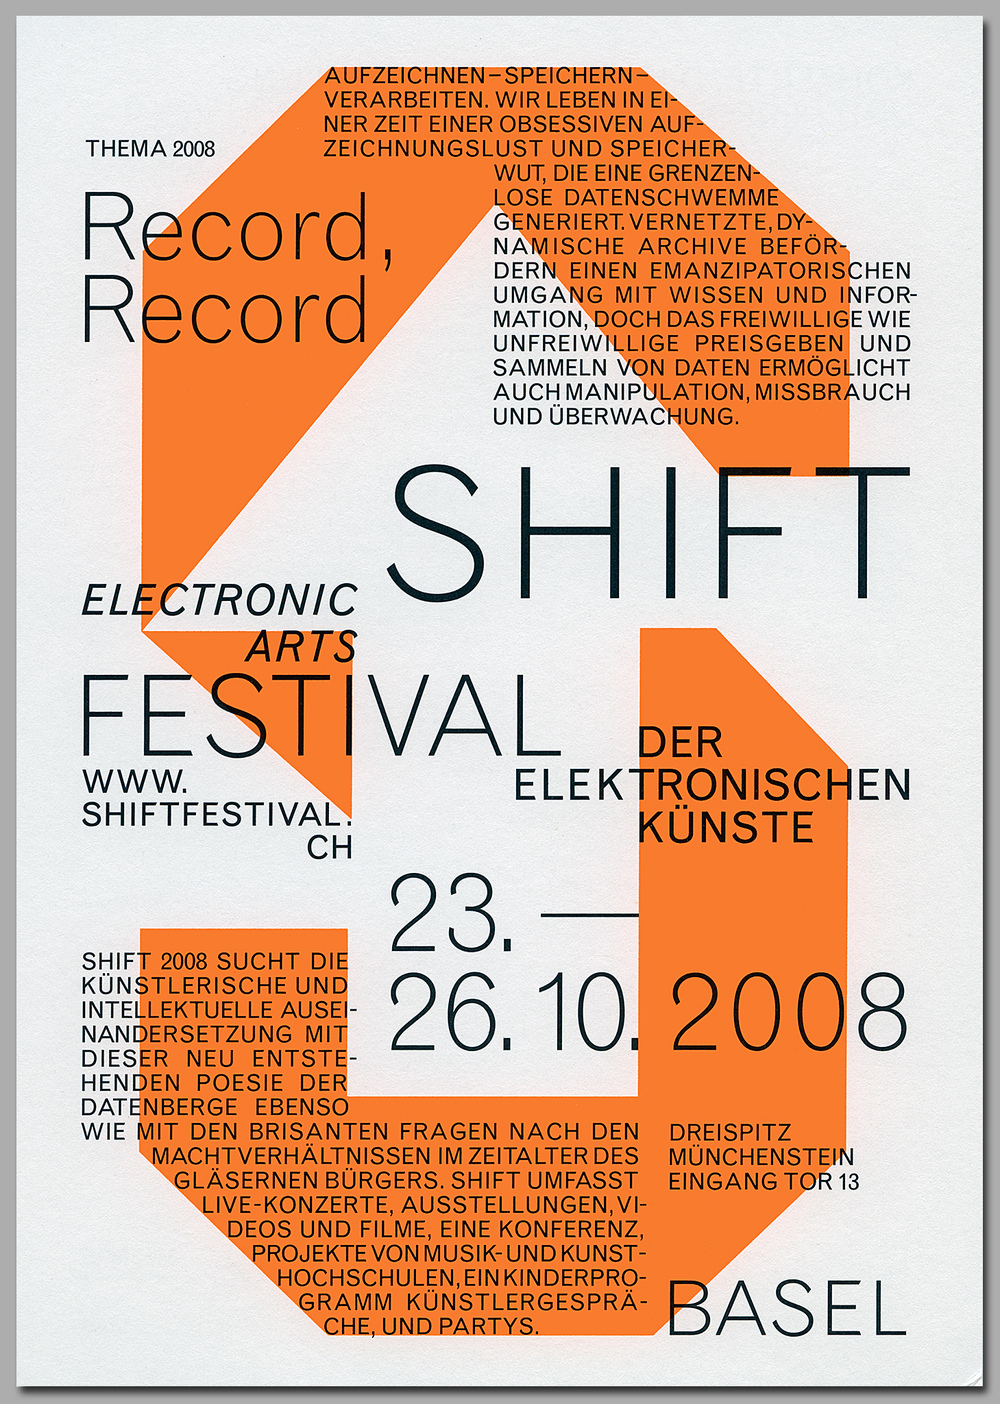 Shift Festival Flyer gray background.jpg